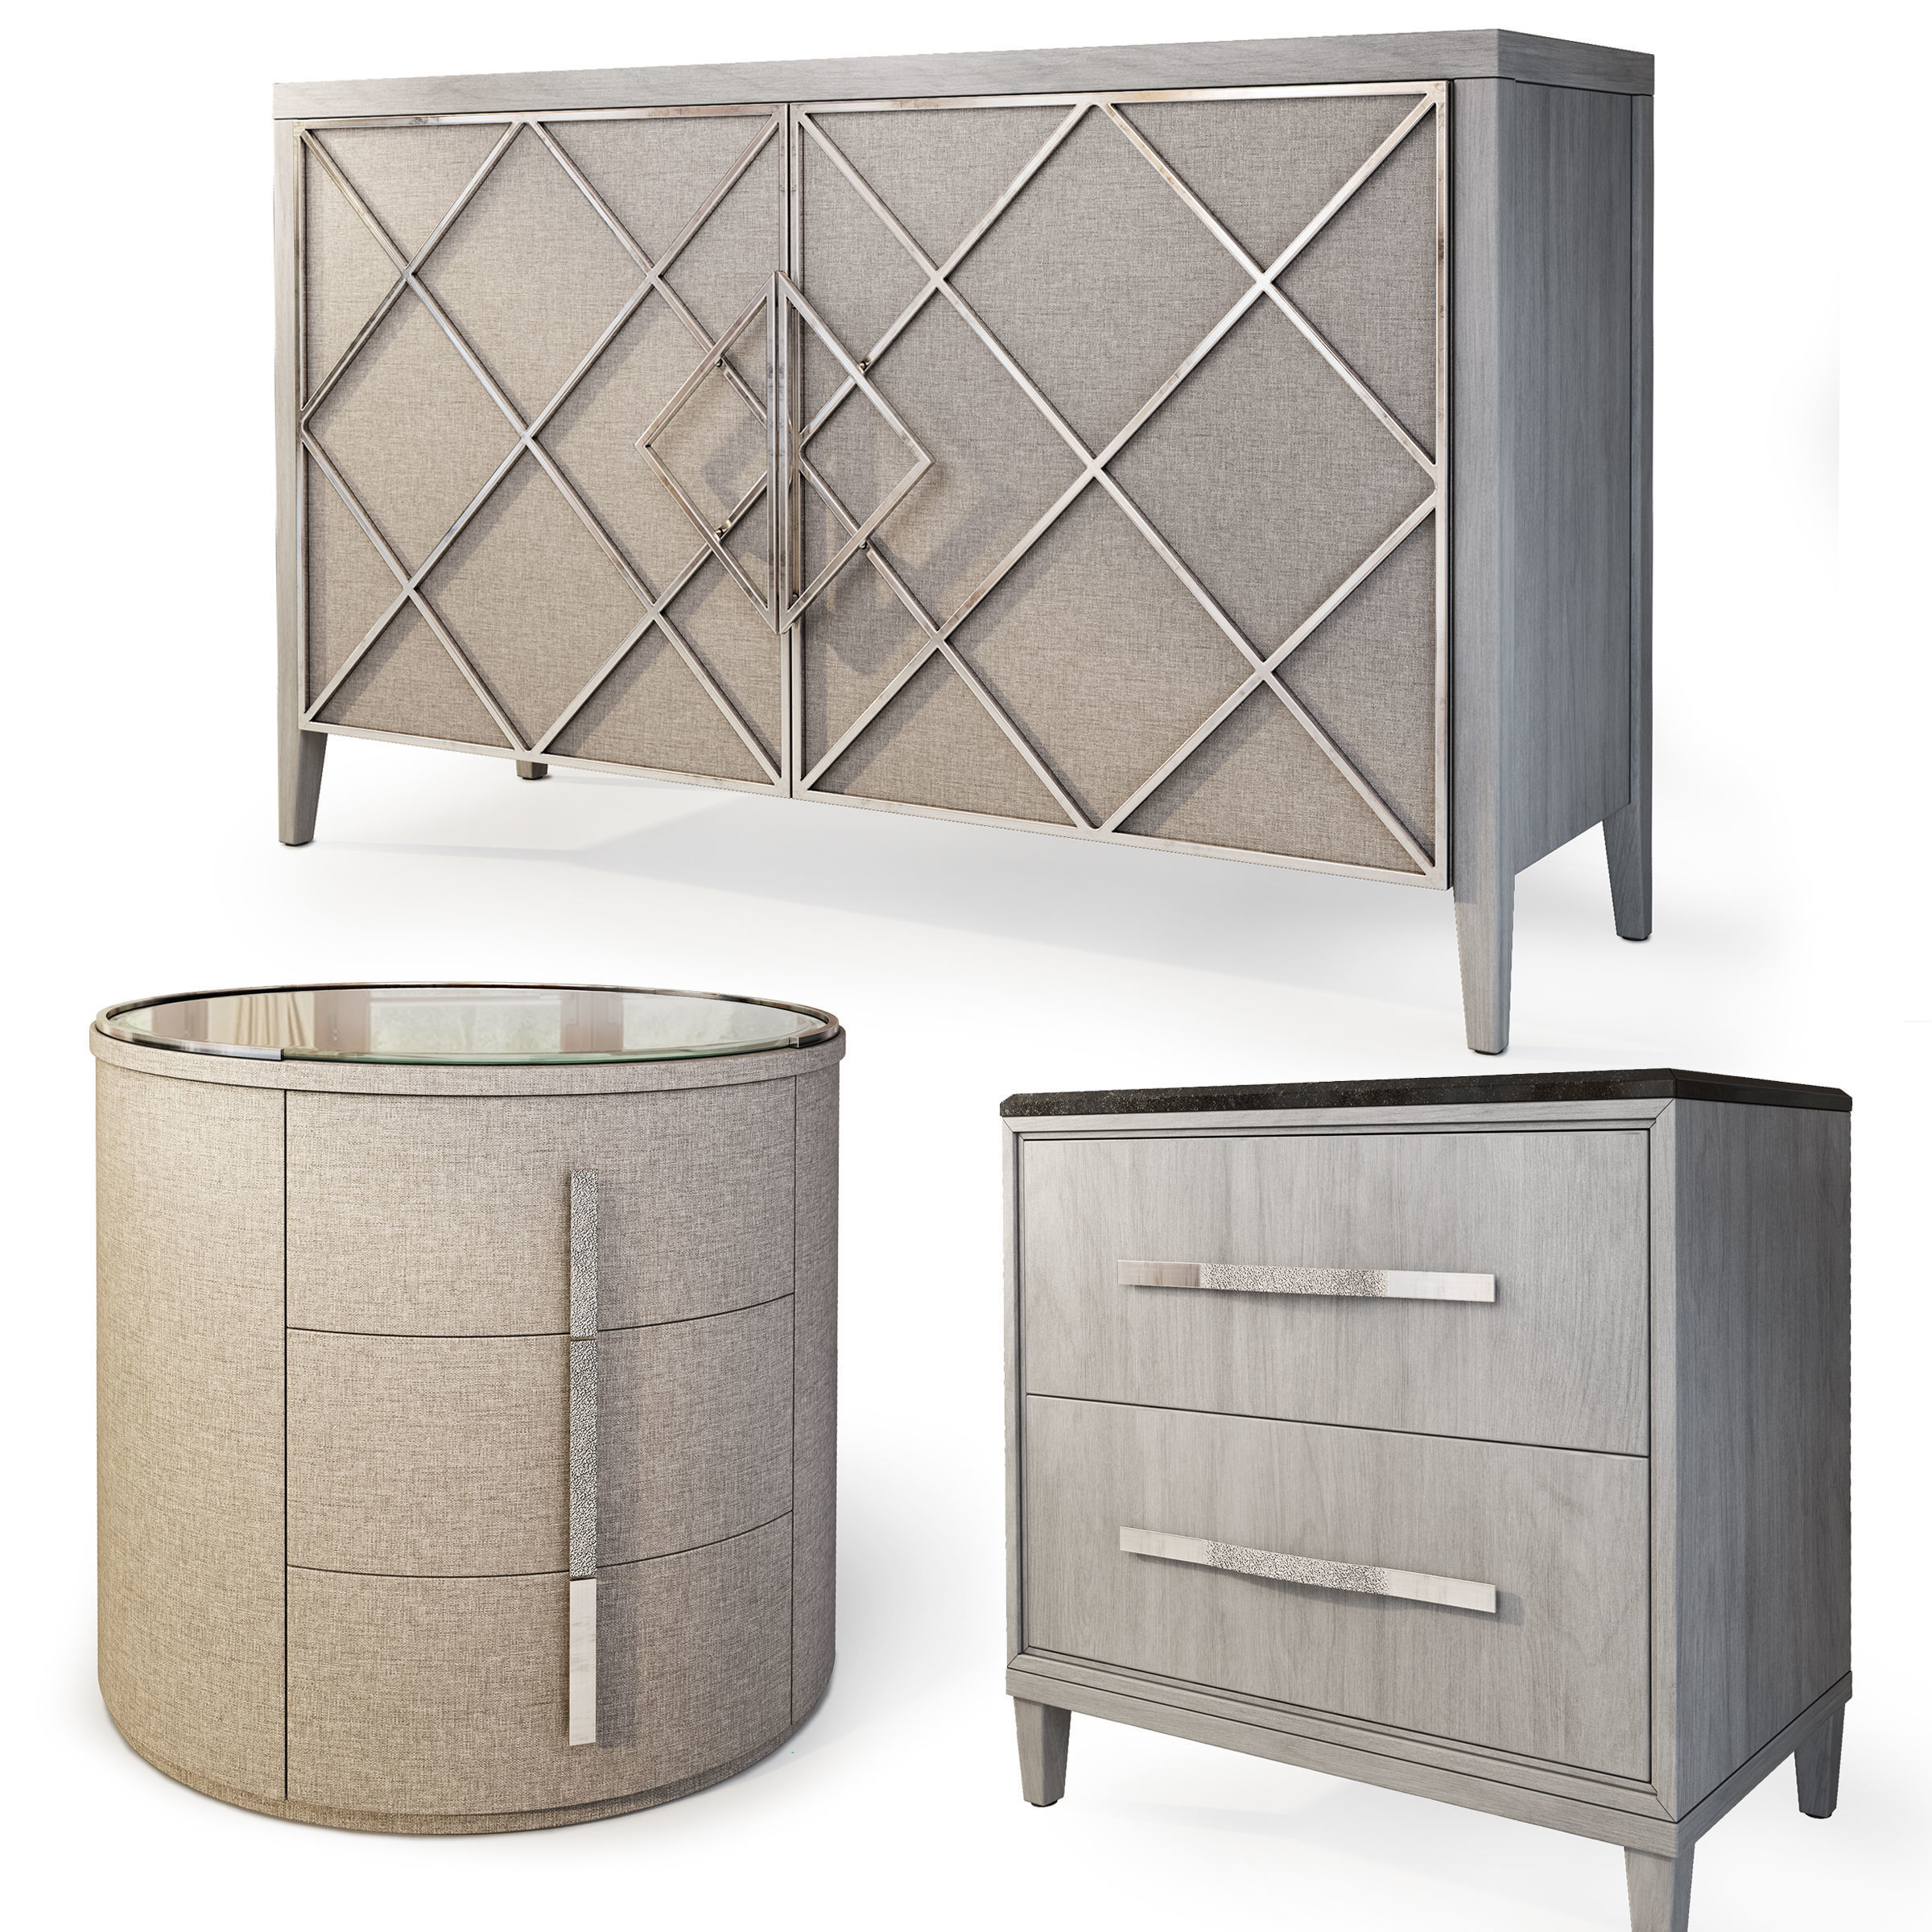 Sideboard nightstand by Carson